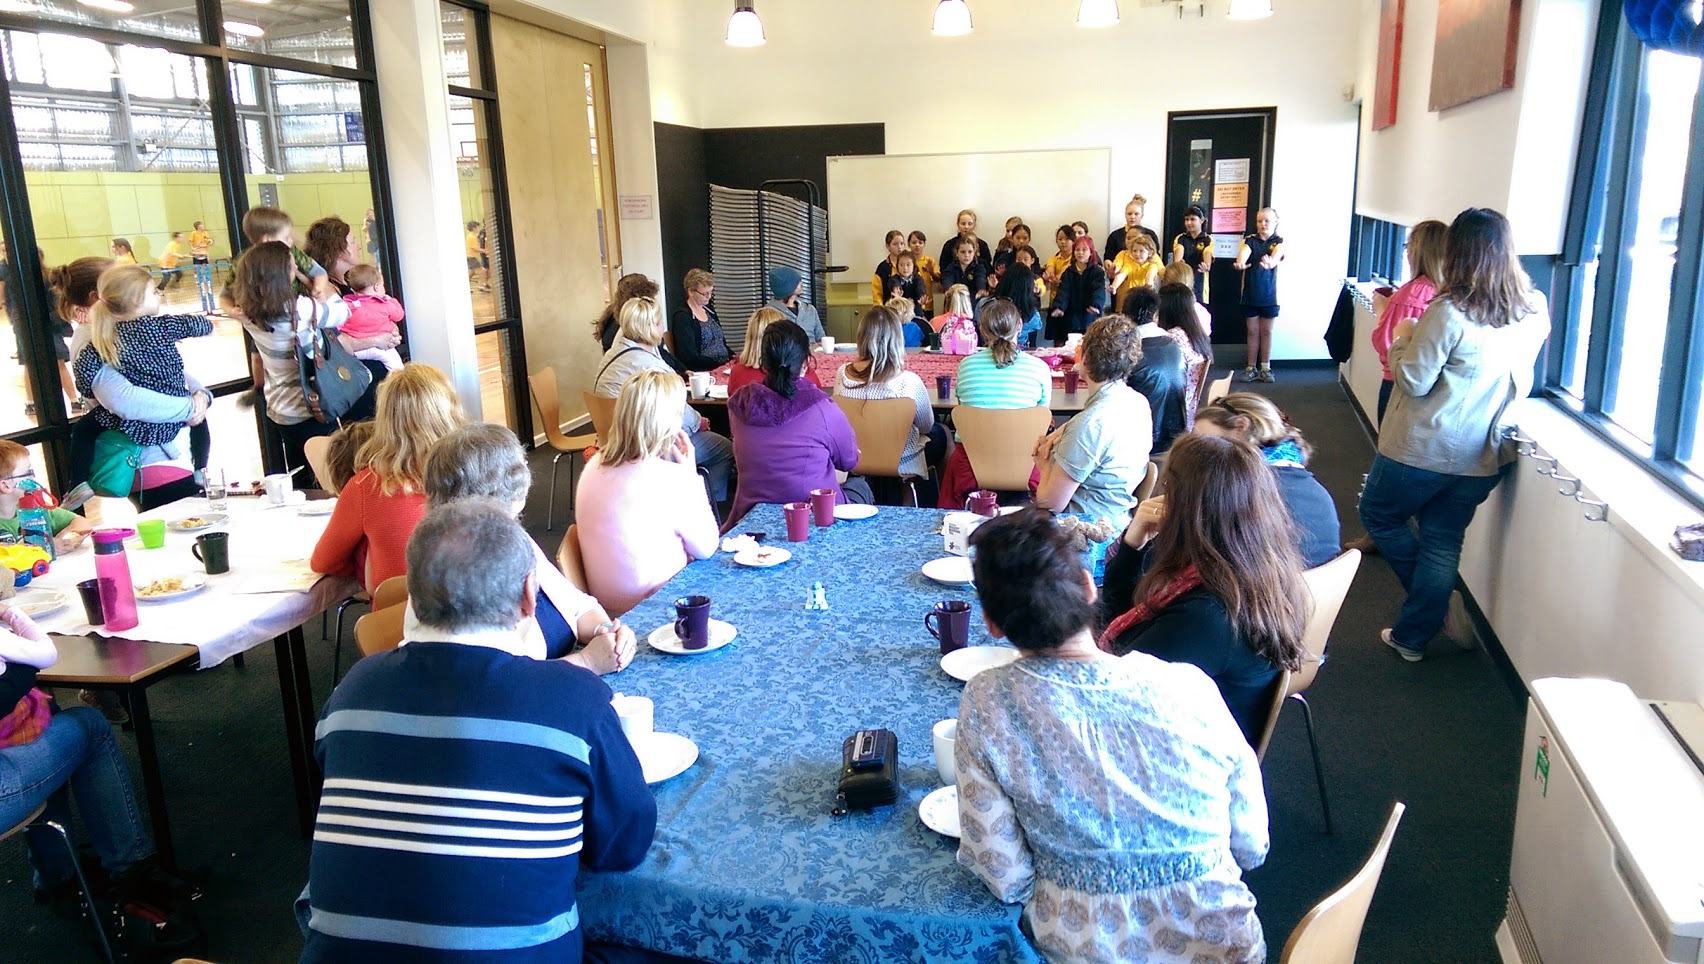 Kalida's choire performs to parents at P&F's annual 'Australia's Biggest Morning Tea'